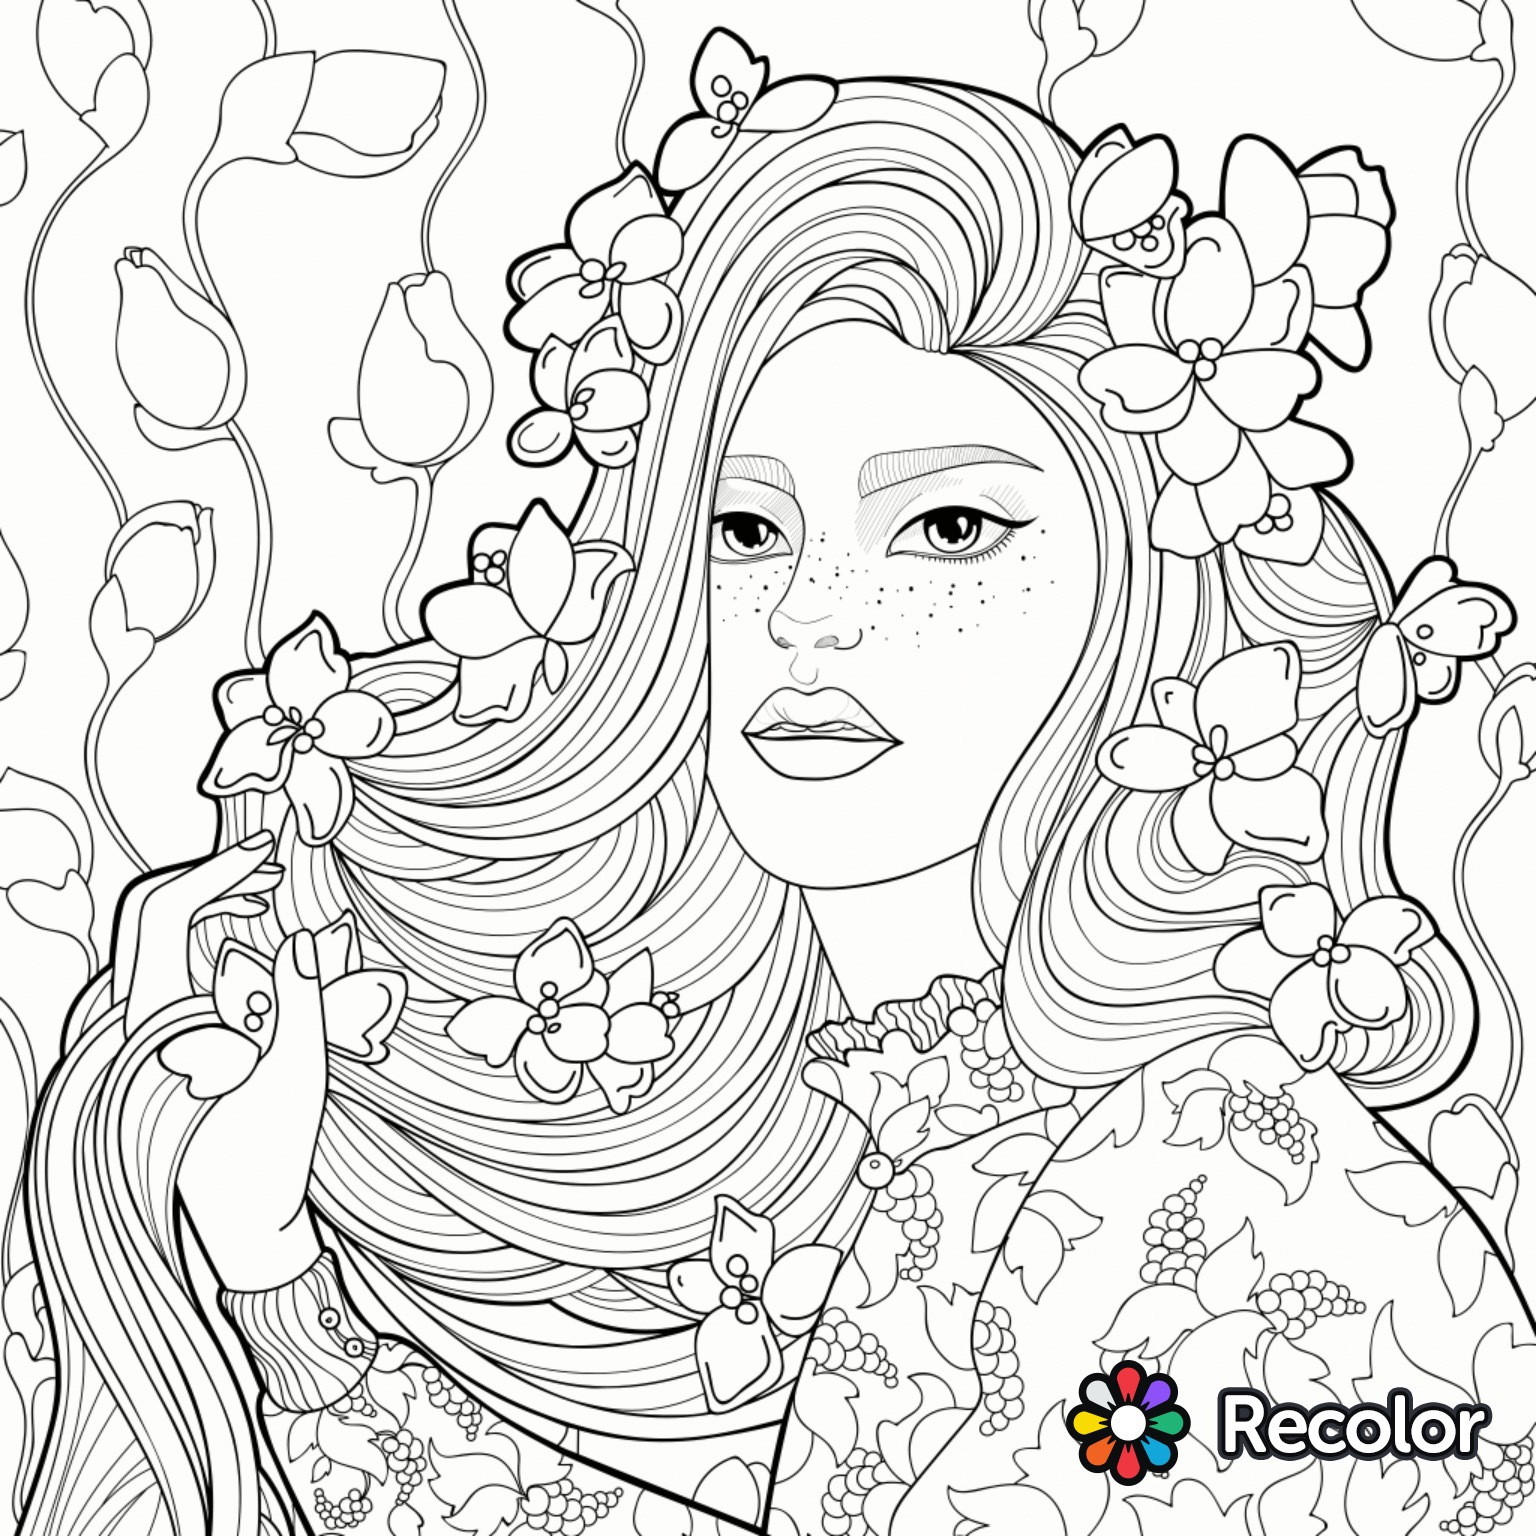 Girl with flowers in her hair drawing at Coloring book hair